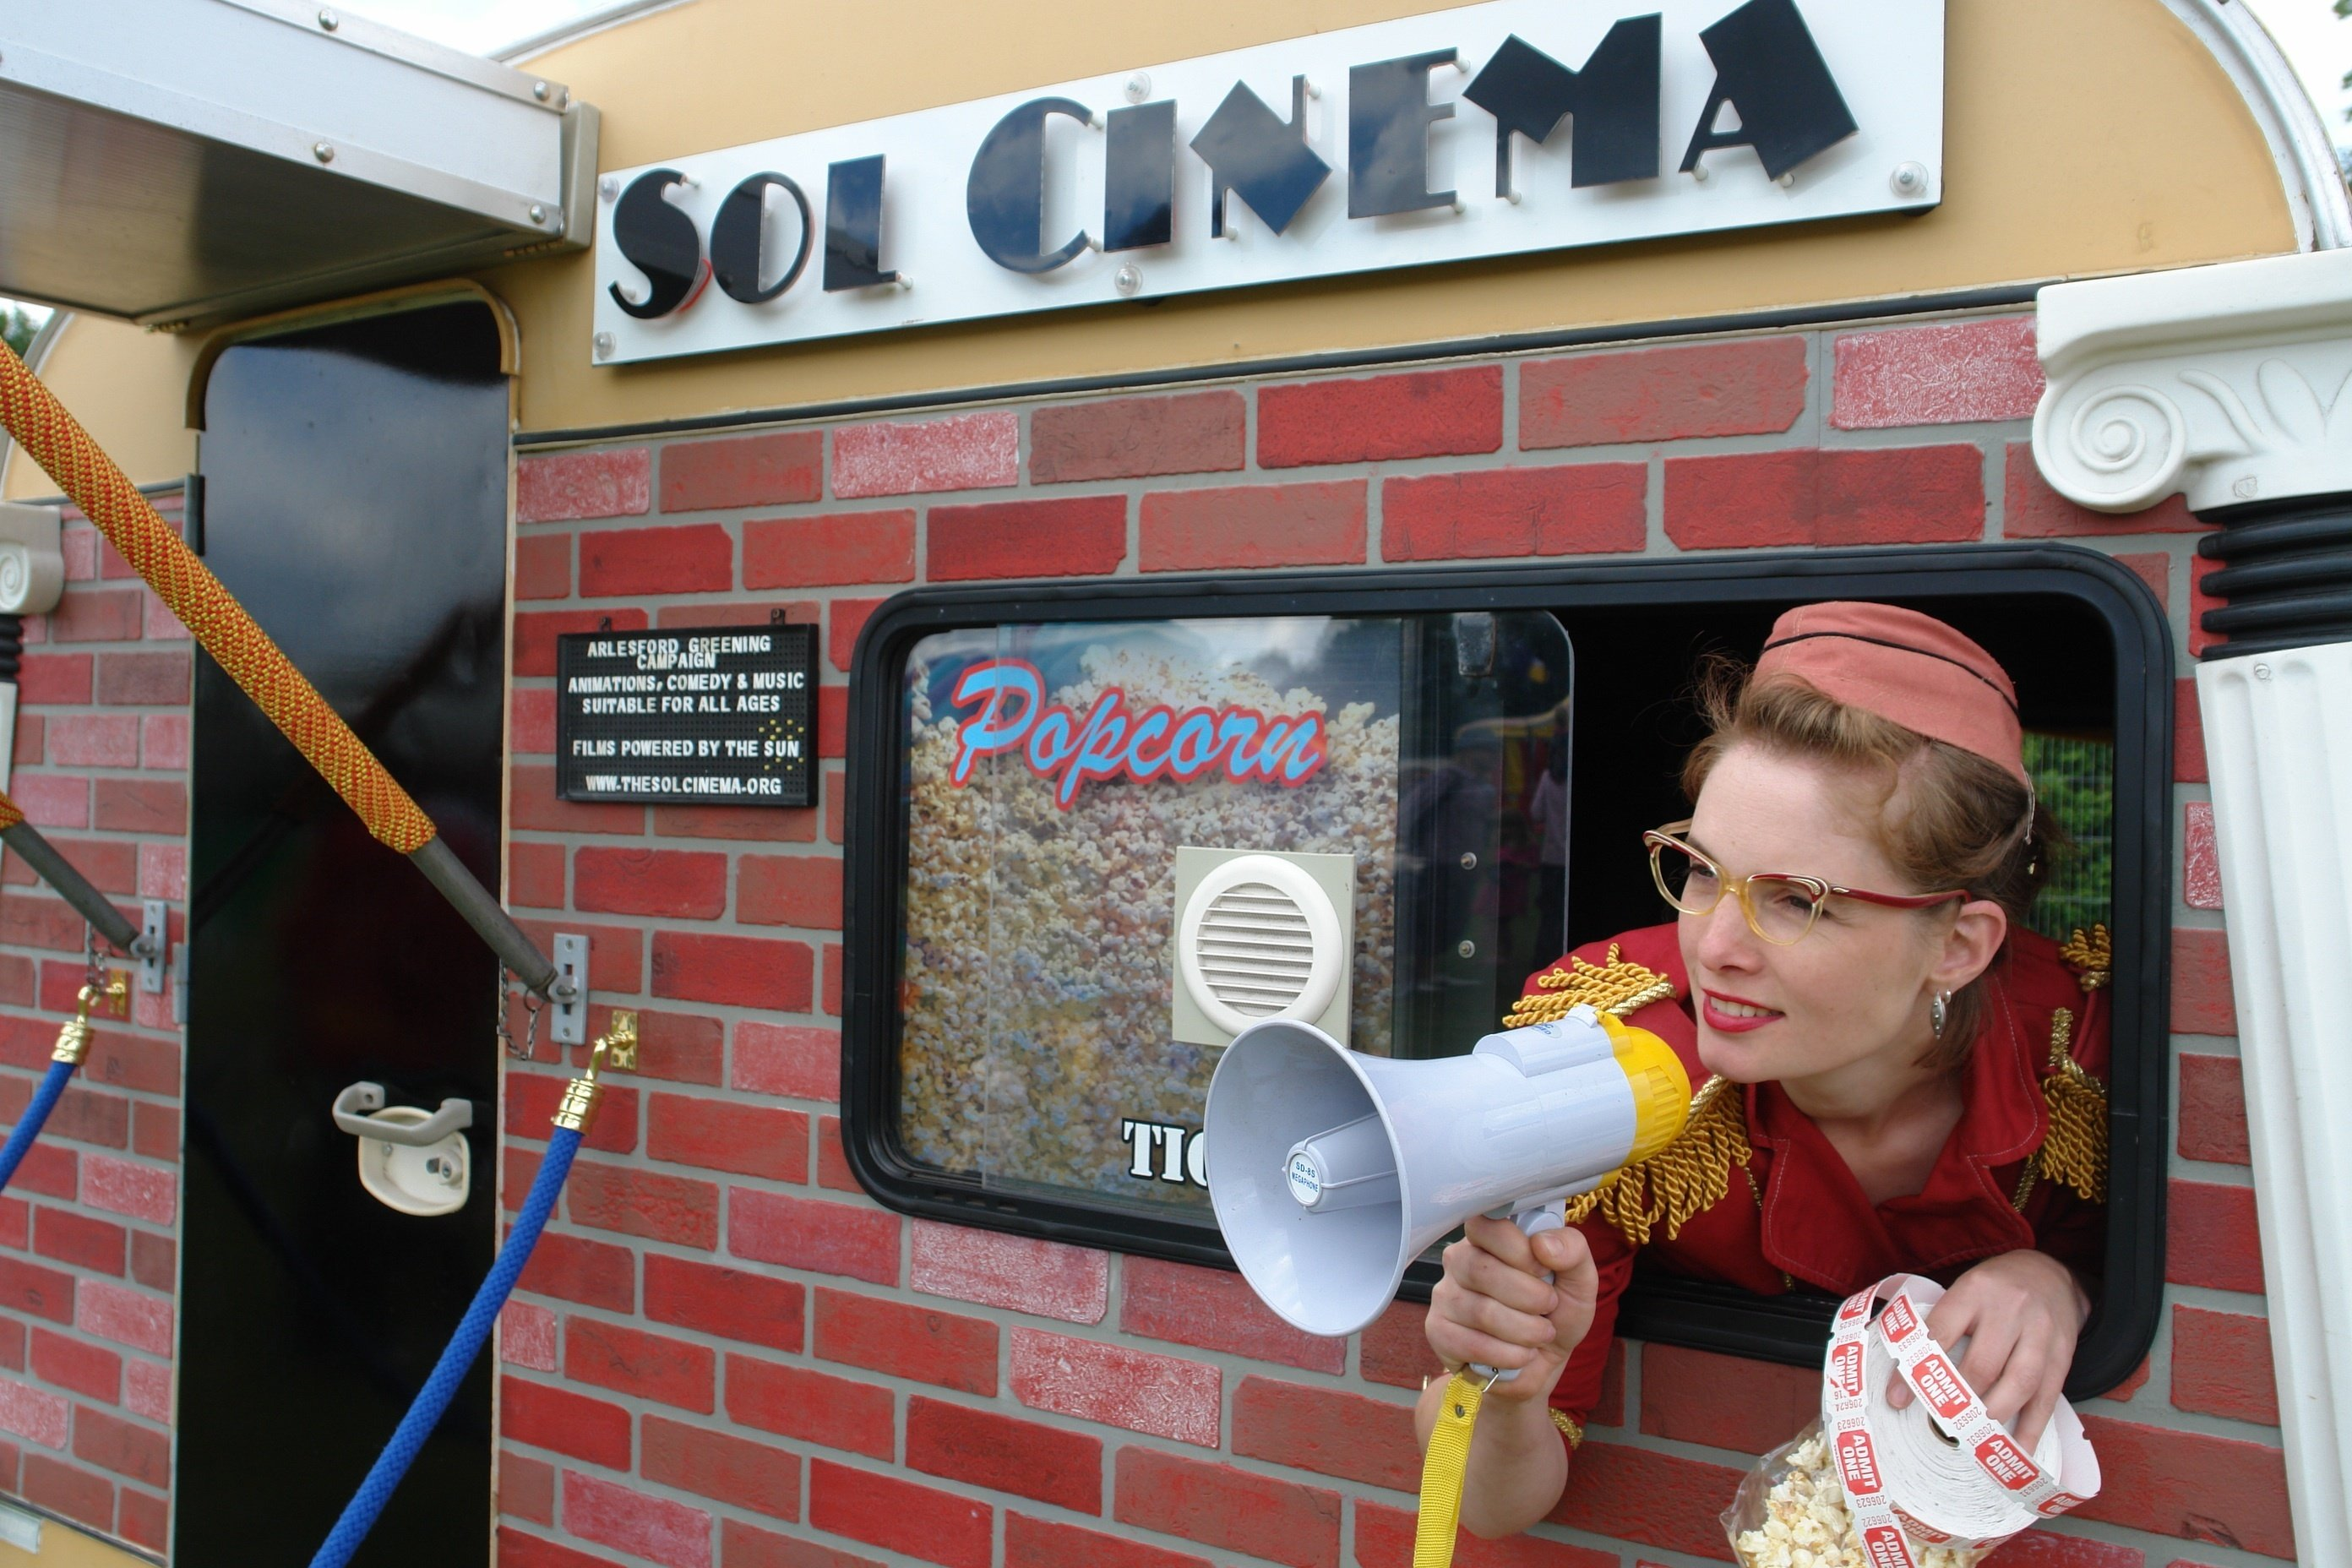 The Sol Cinema image